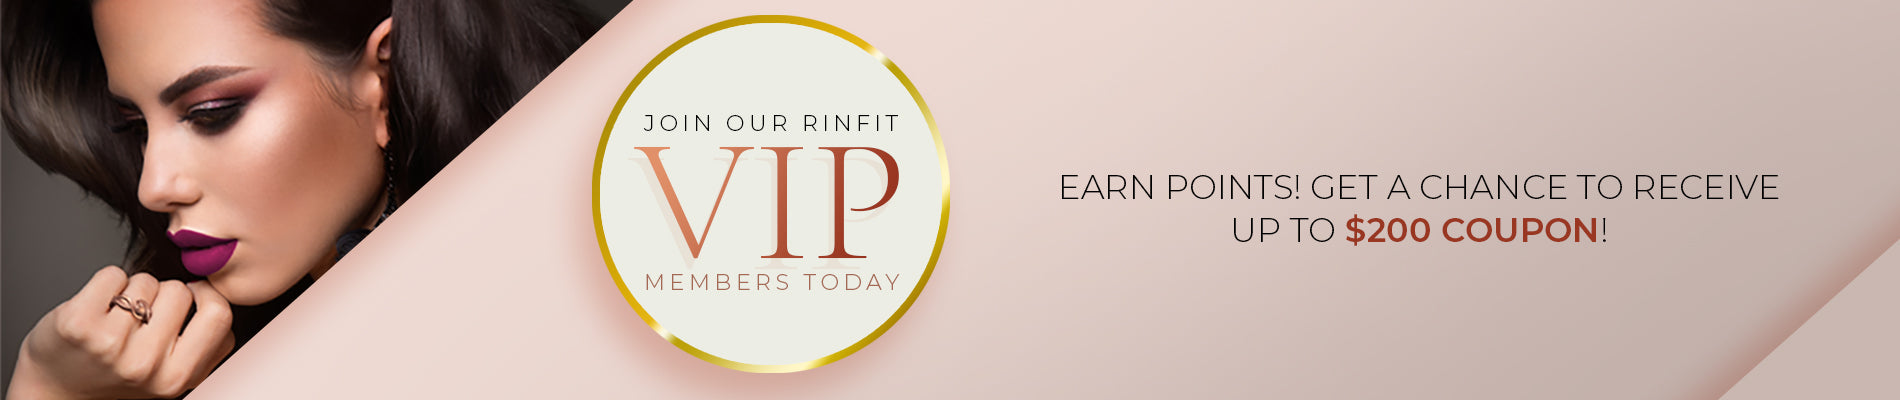 vip POINTS RINFIT SILICONE RINGS